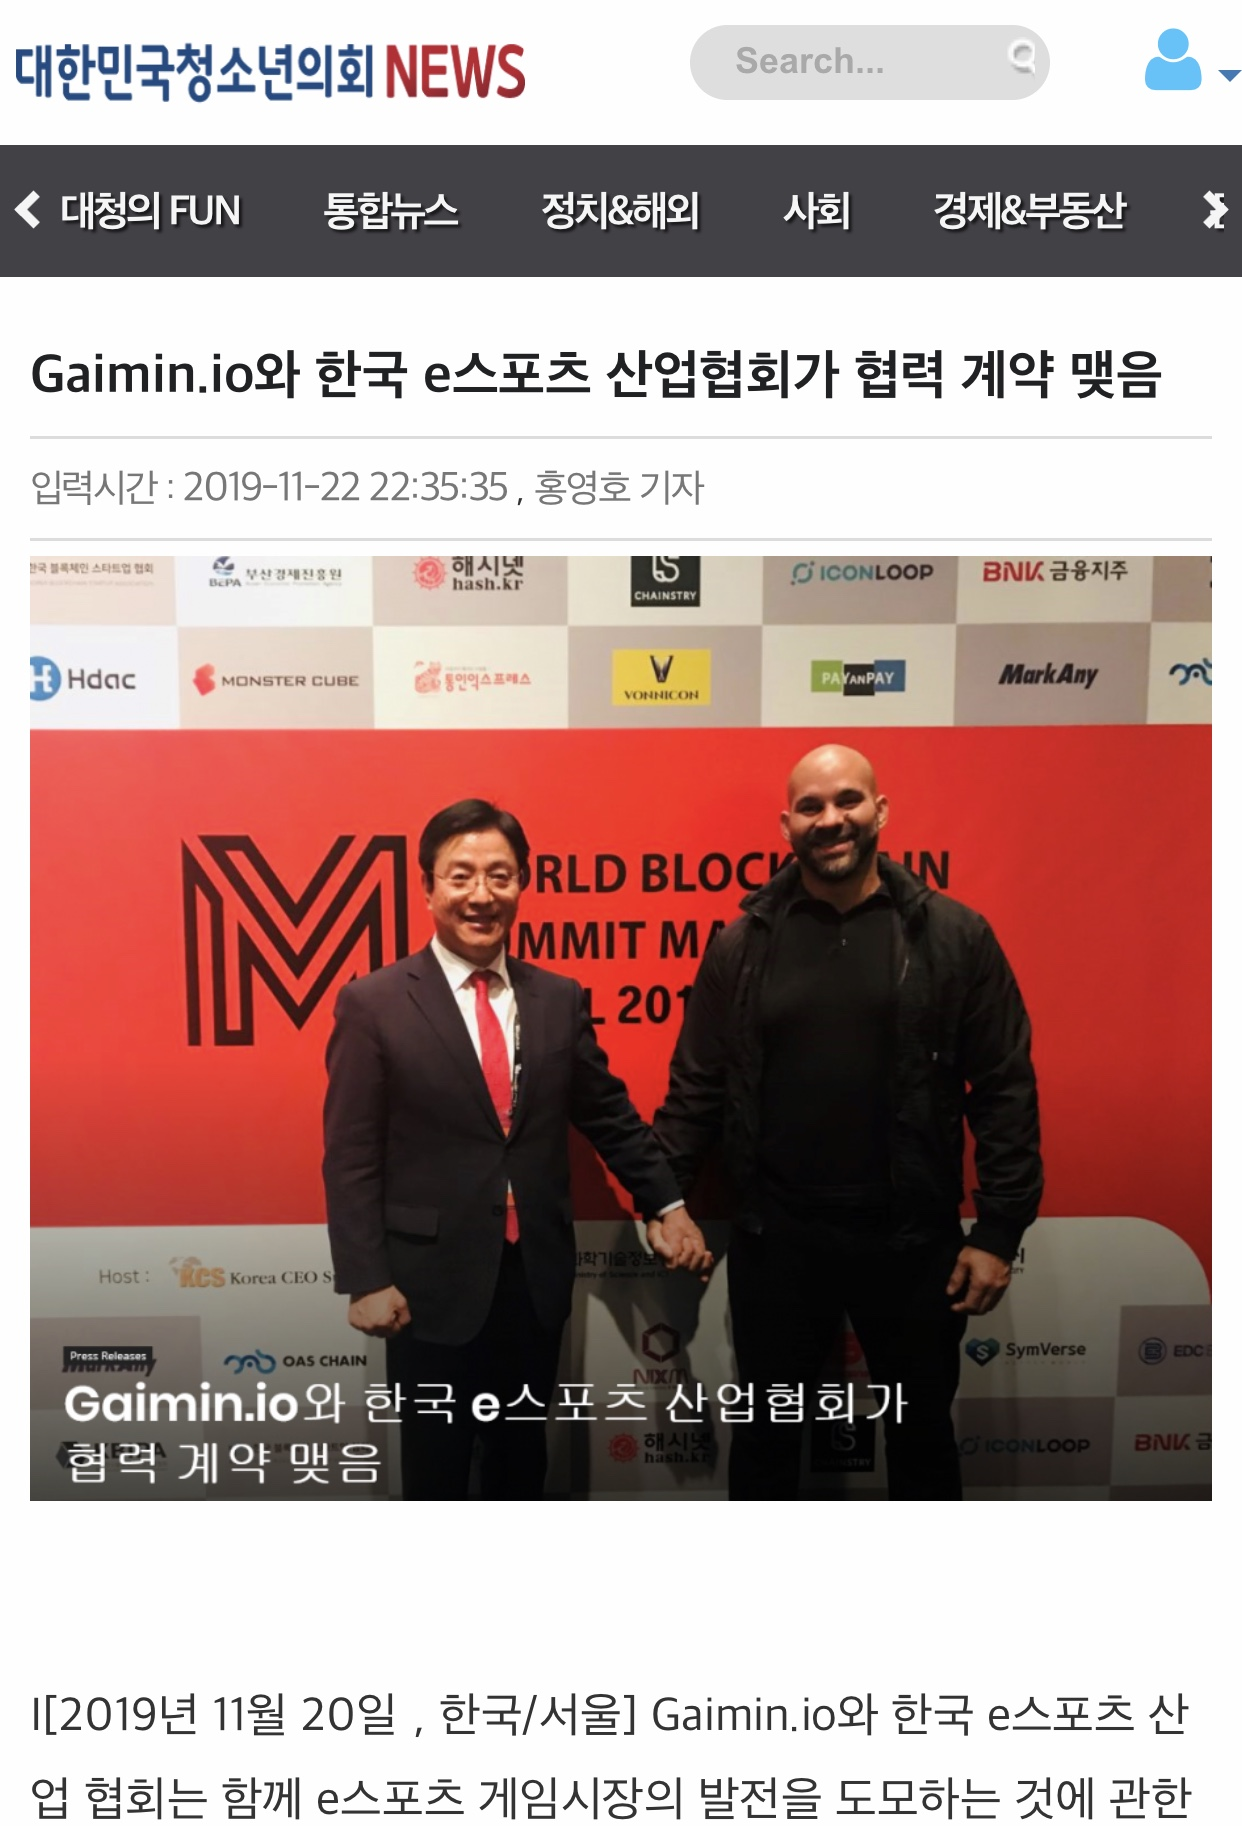 , Youth Assembly Korea: Gaimin.io와 한국 e스포츠 산업협회가 협력 계약 맺음, Blockchain Adviser for Inter-Governmental Organisation | Book Author | Investor | Board Member